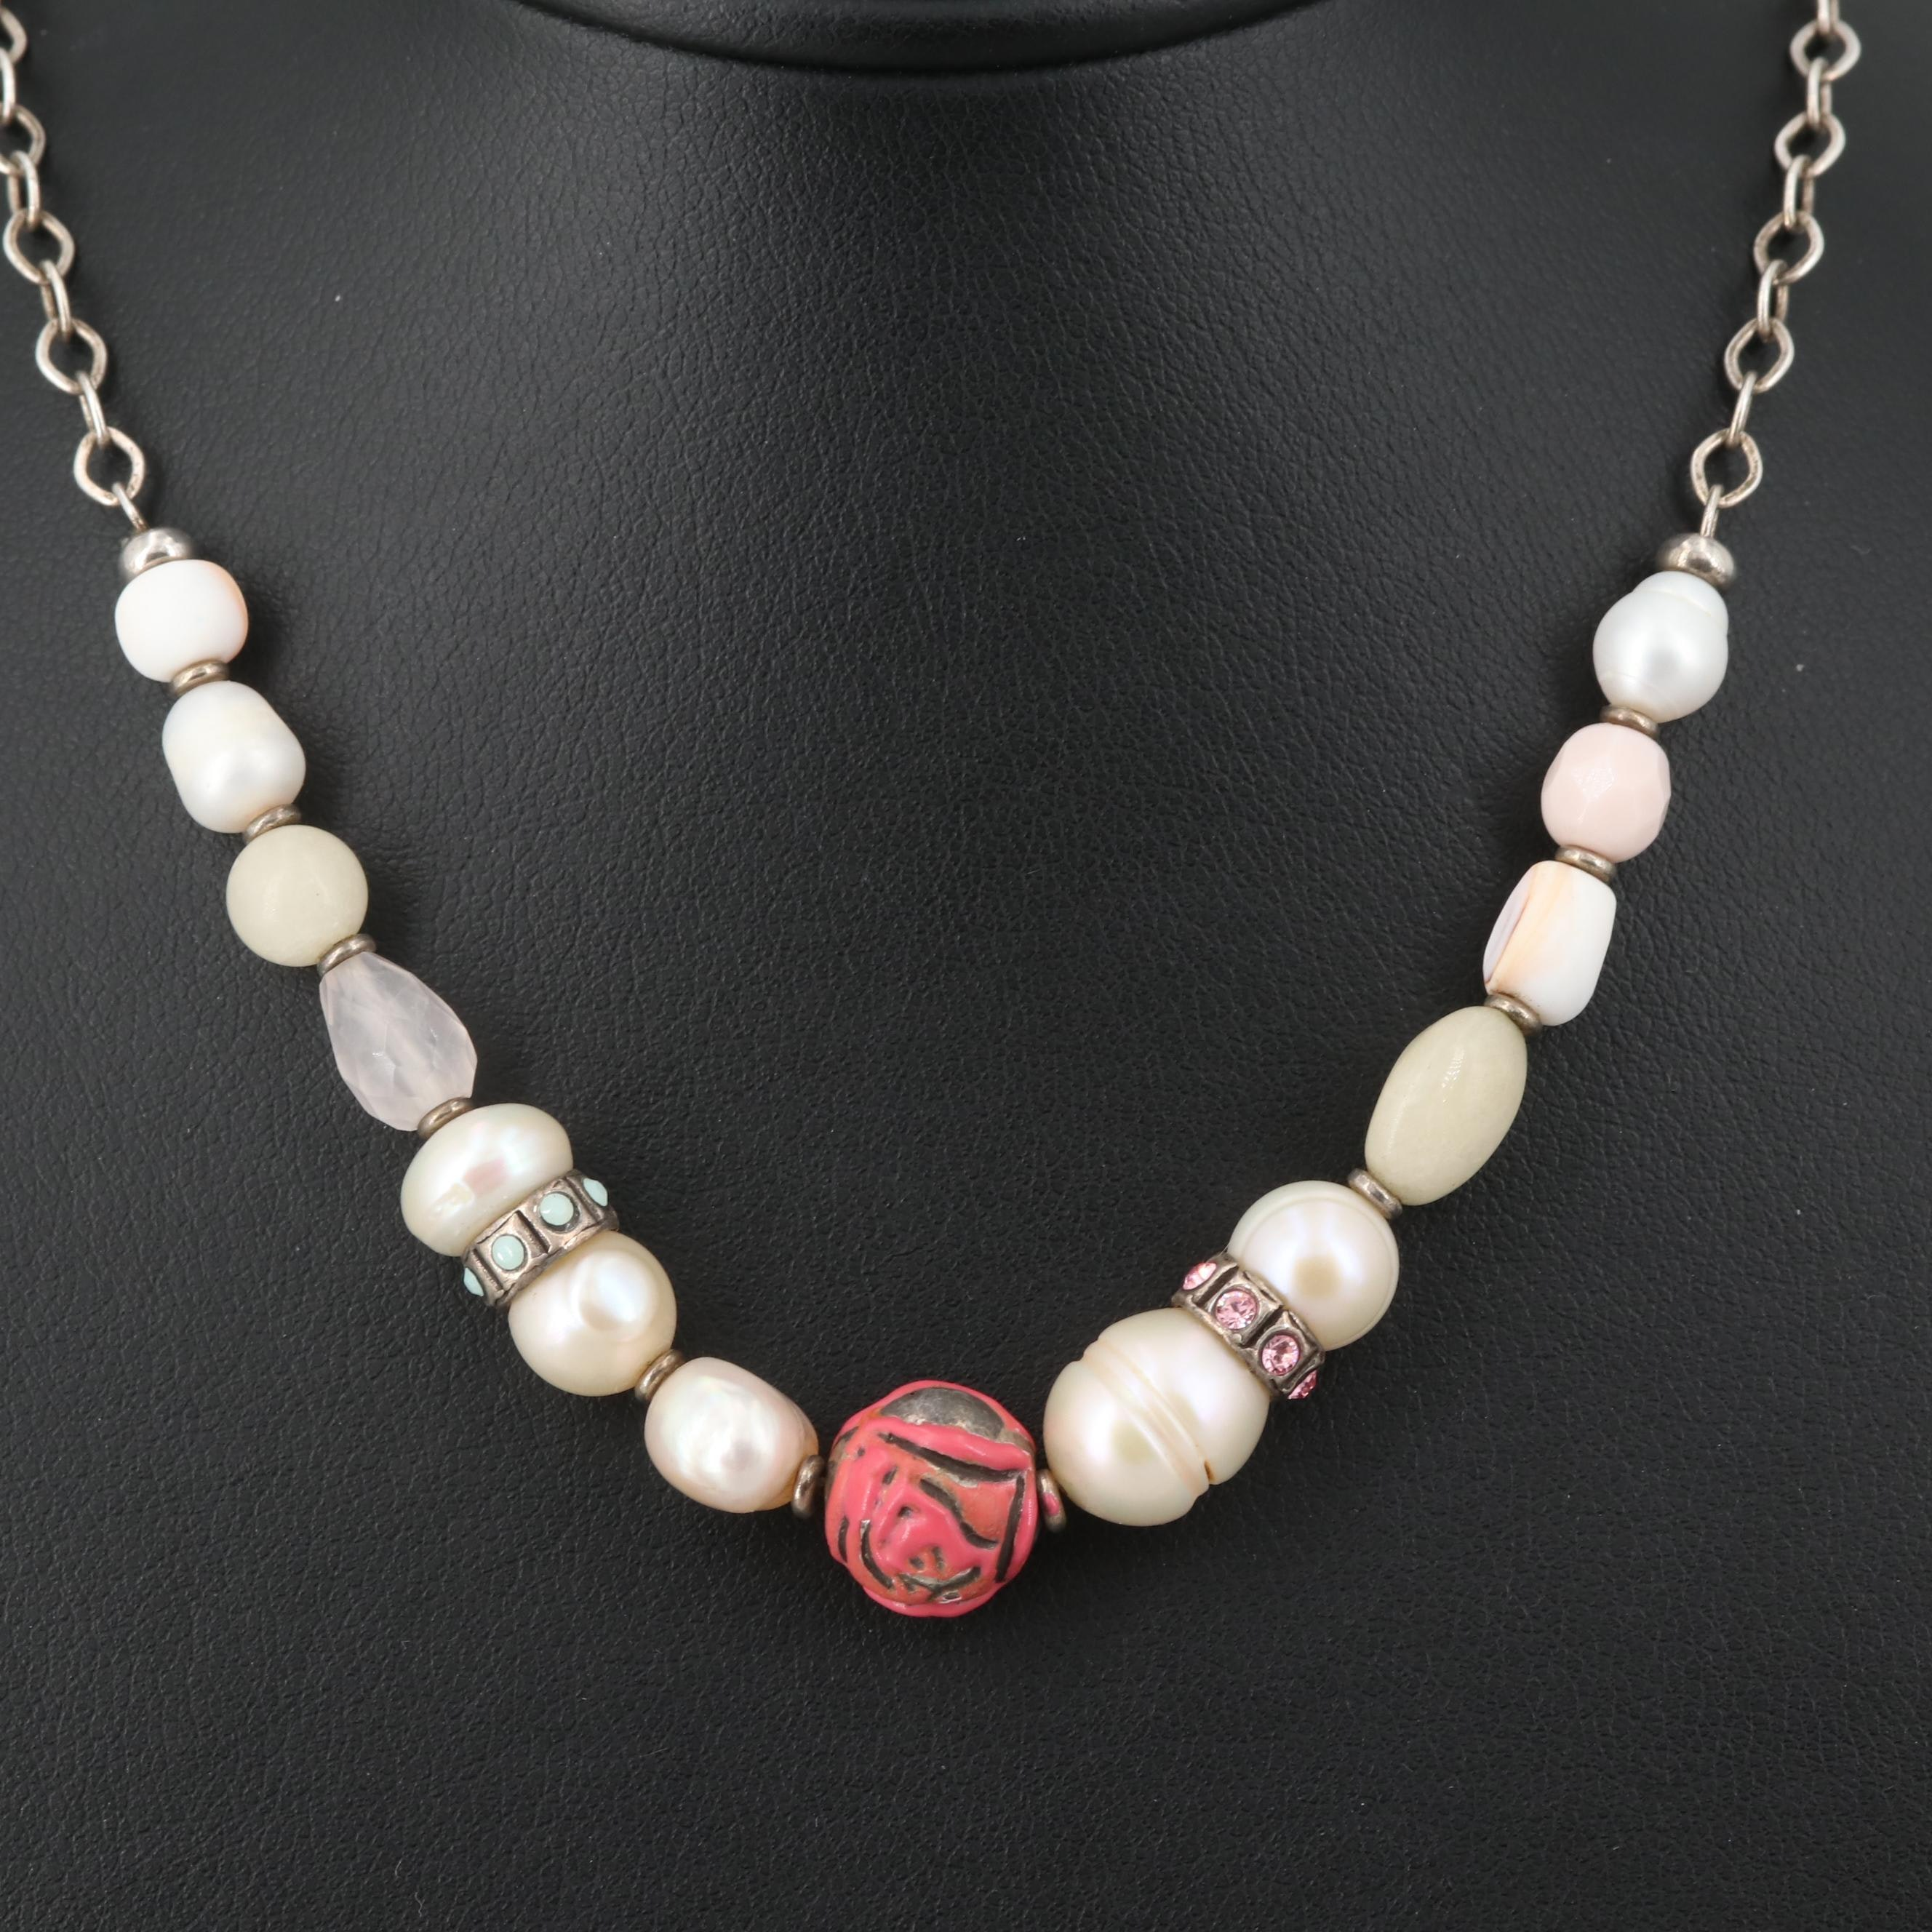 Silver Tone Cultured Pearl, Rose Quartz, and Shell Beaded Necklace